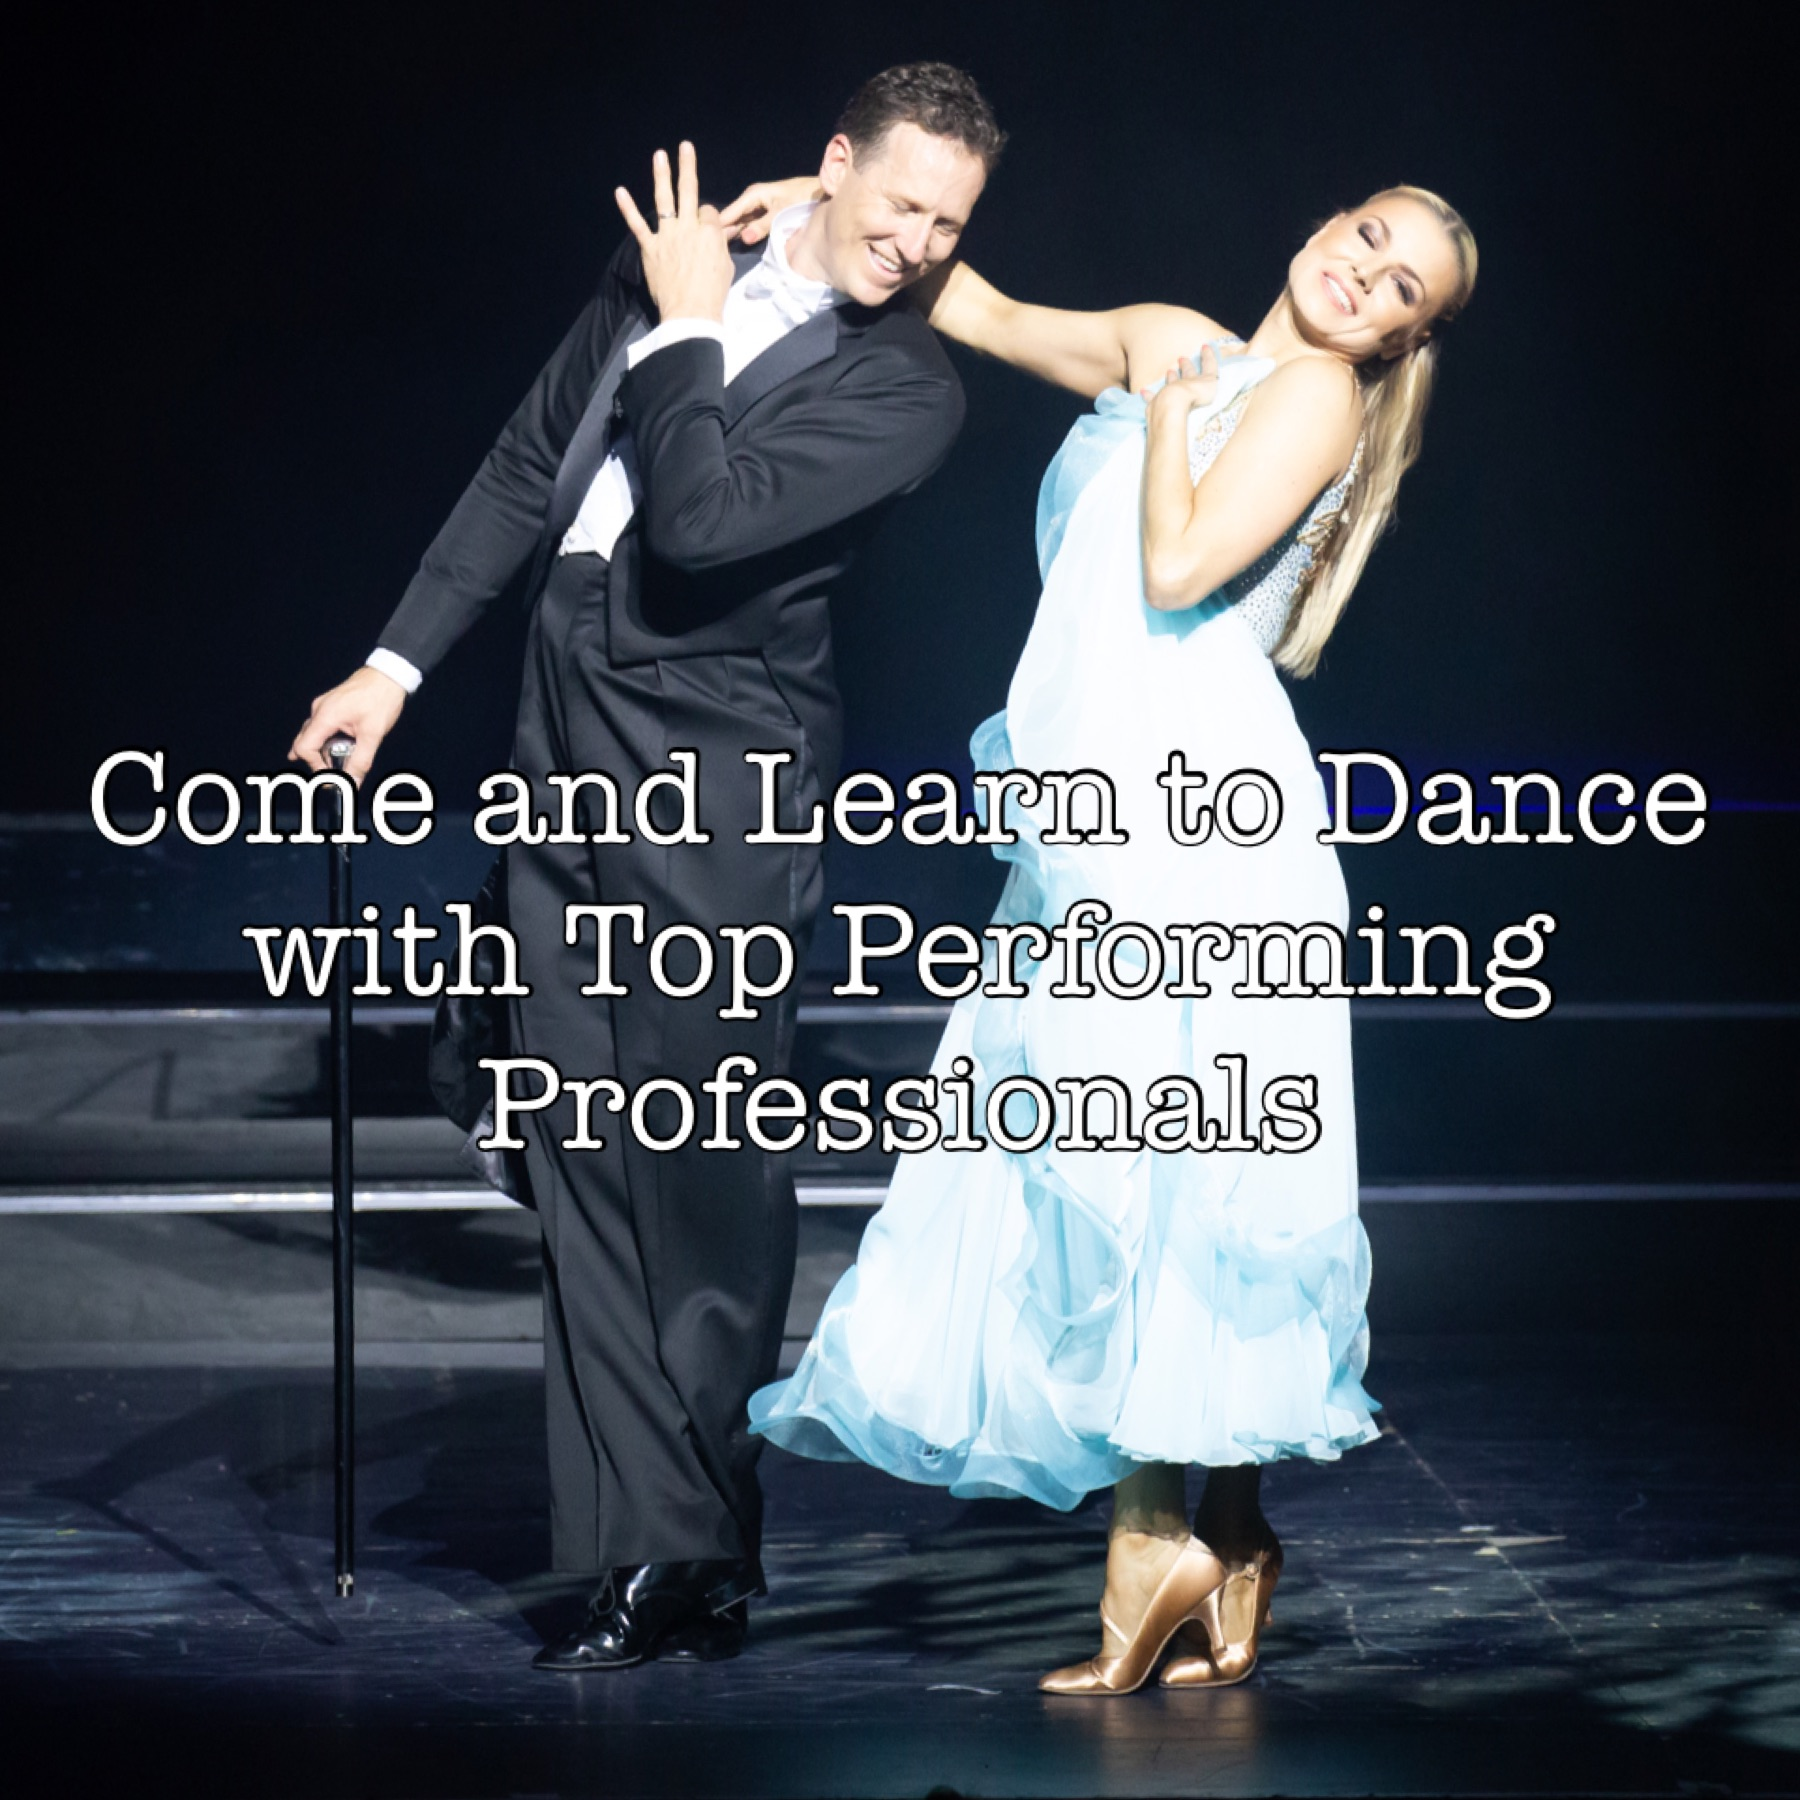 Crystal with Brendan Cole, Come and learn to dance with Top performing professionals.